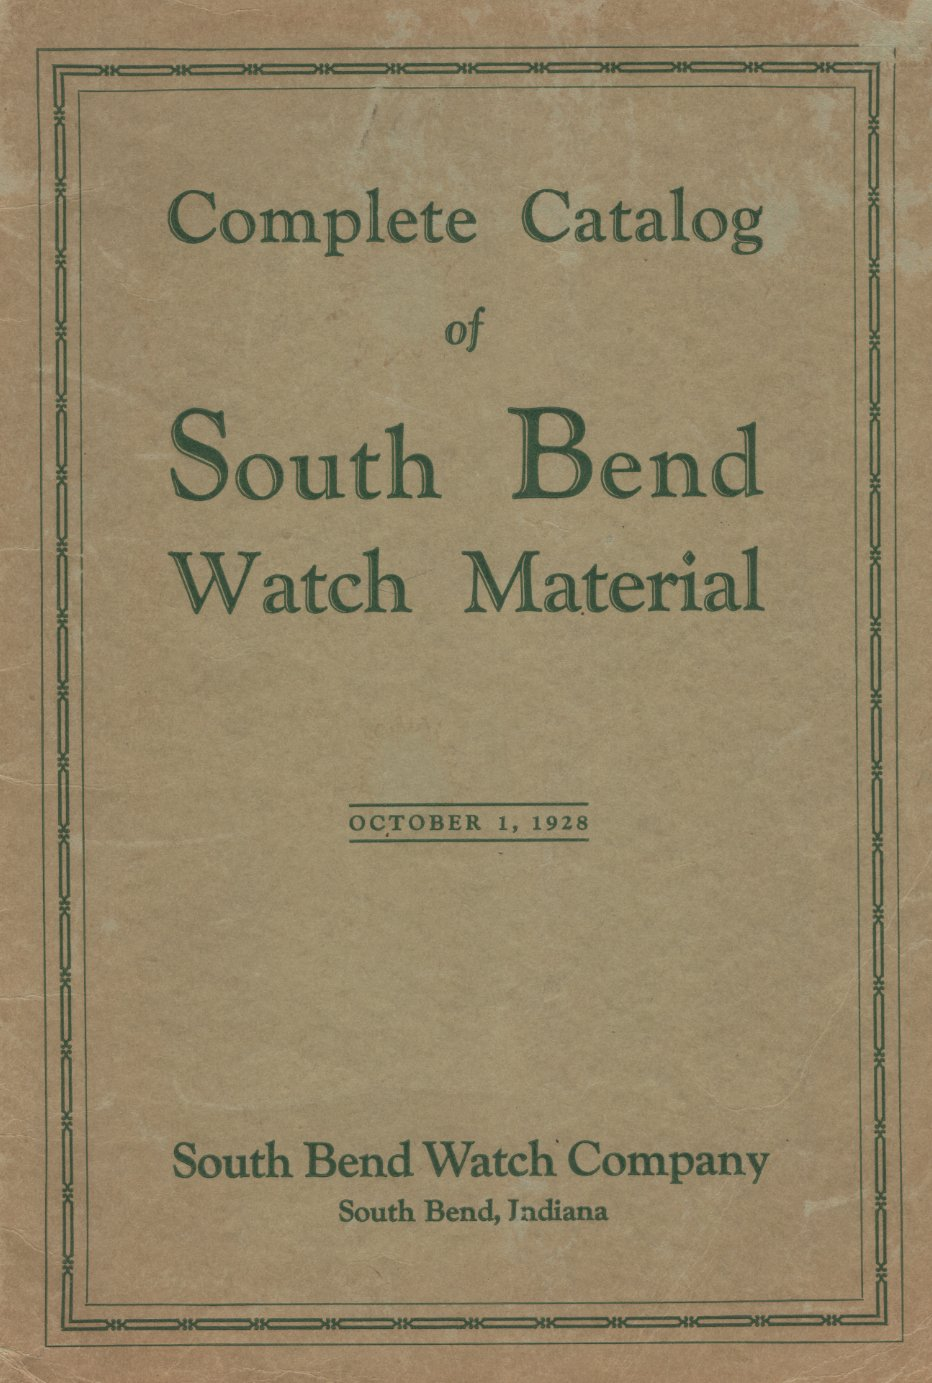 1928 South Bend Material Catalog Cover Image